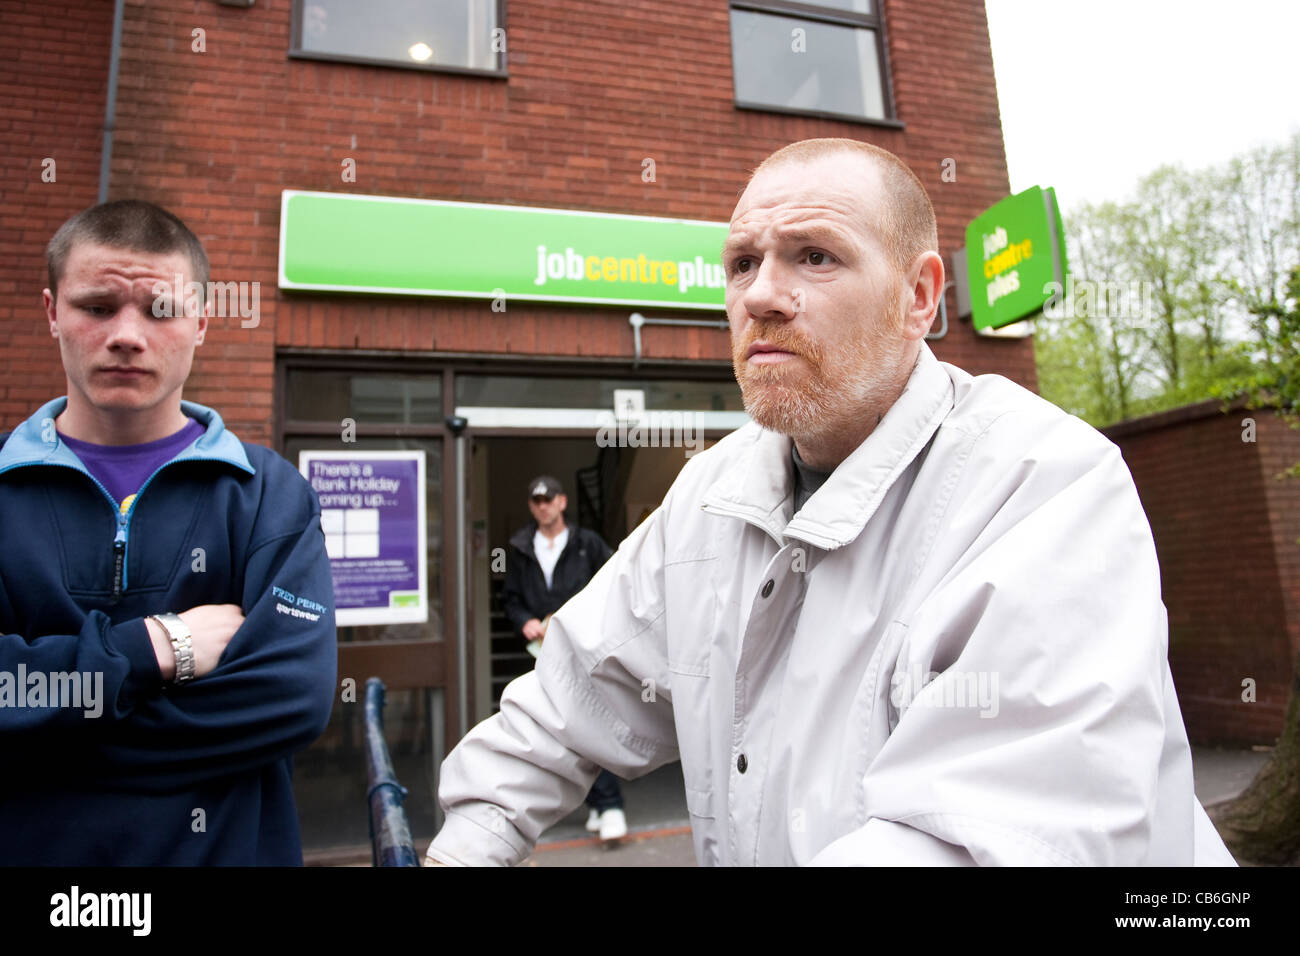 Unemployed youths outside the Job Centre, Dudley, West Midlands, United Kingdom. Photo:Jeff Gilbert - Stock Image